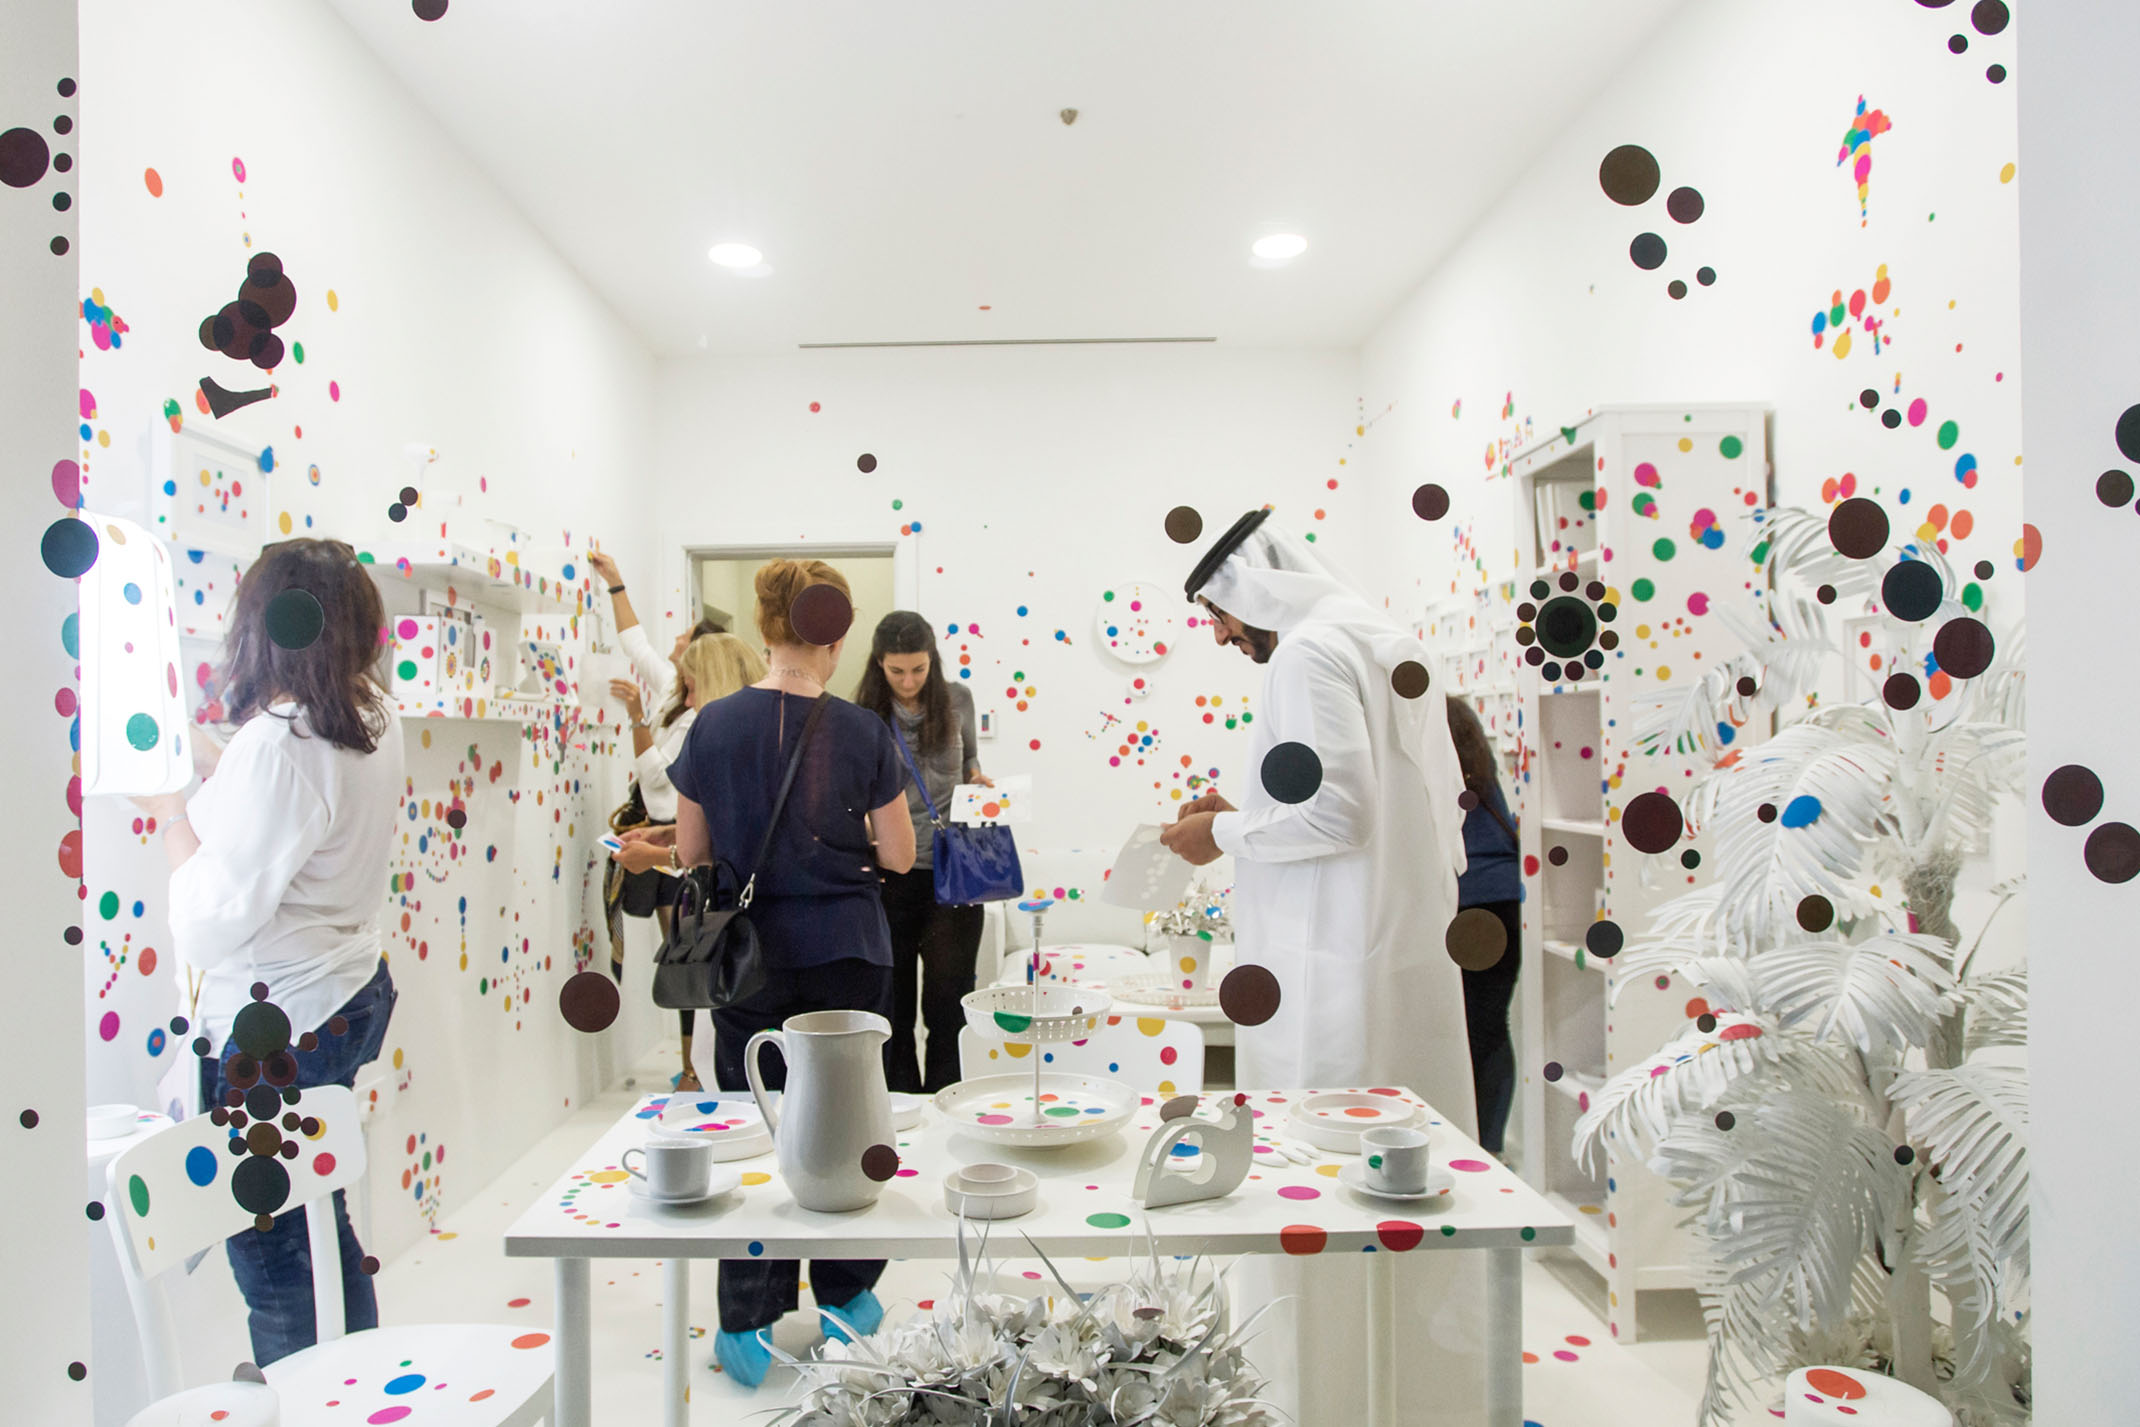 The obliteration room Image